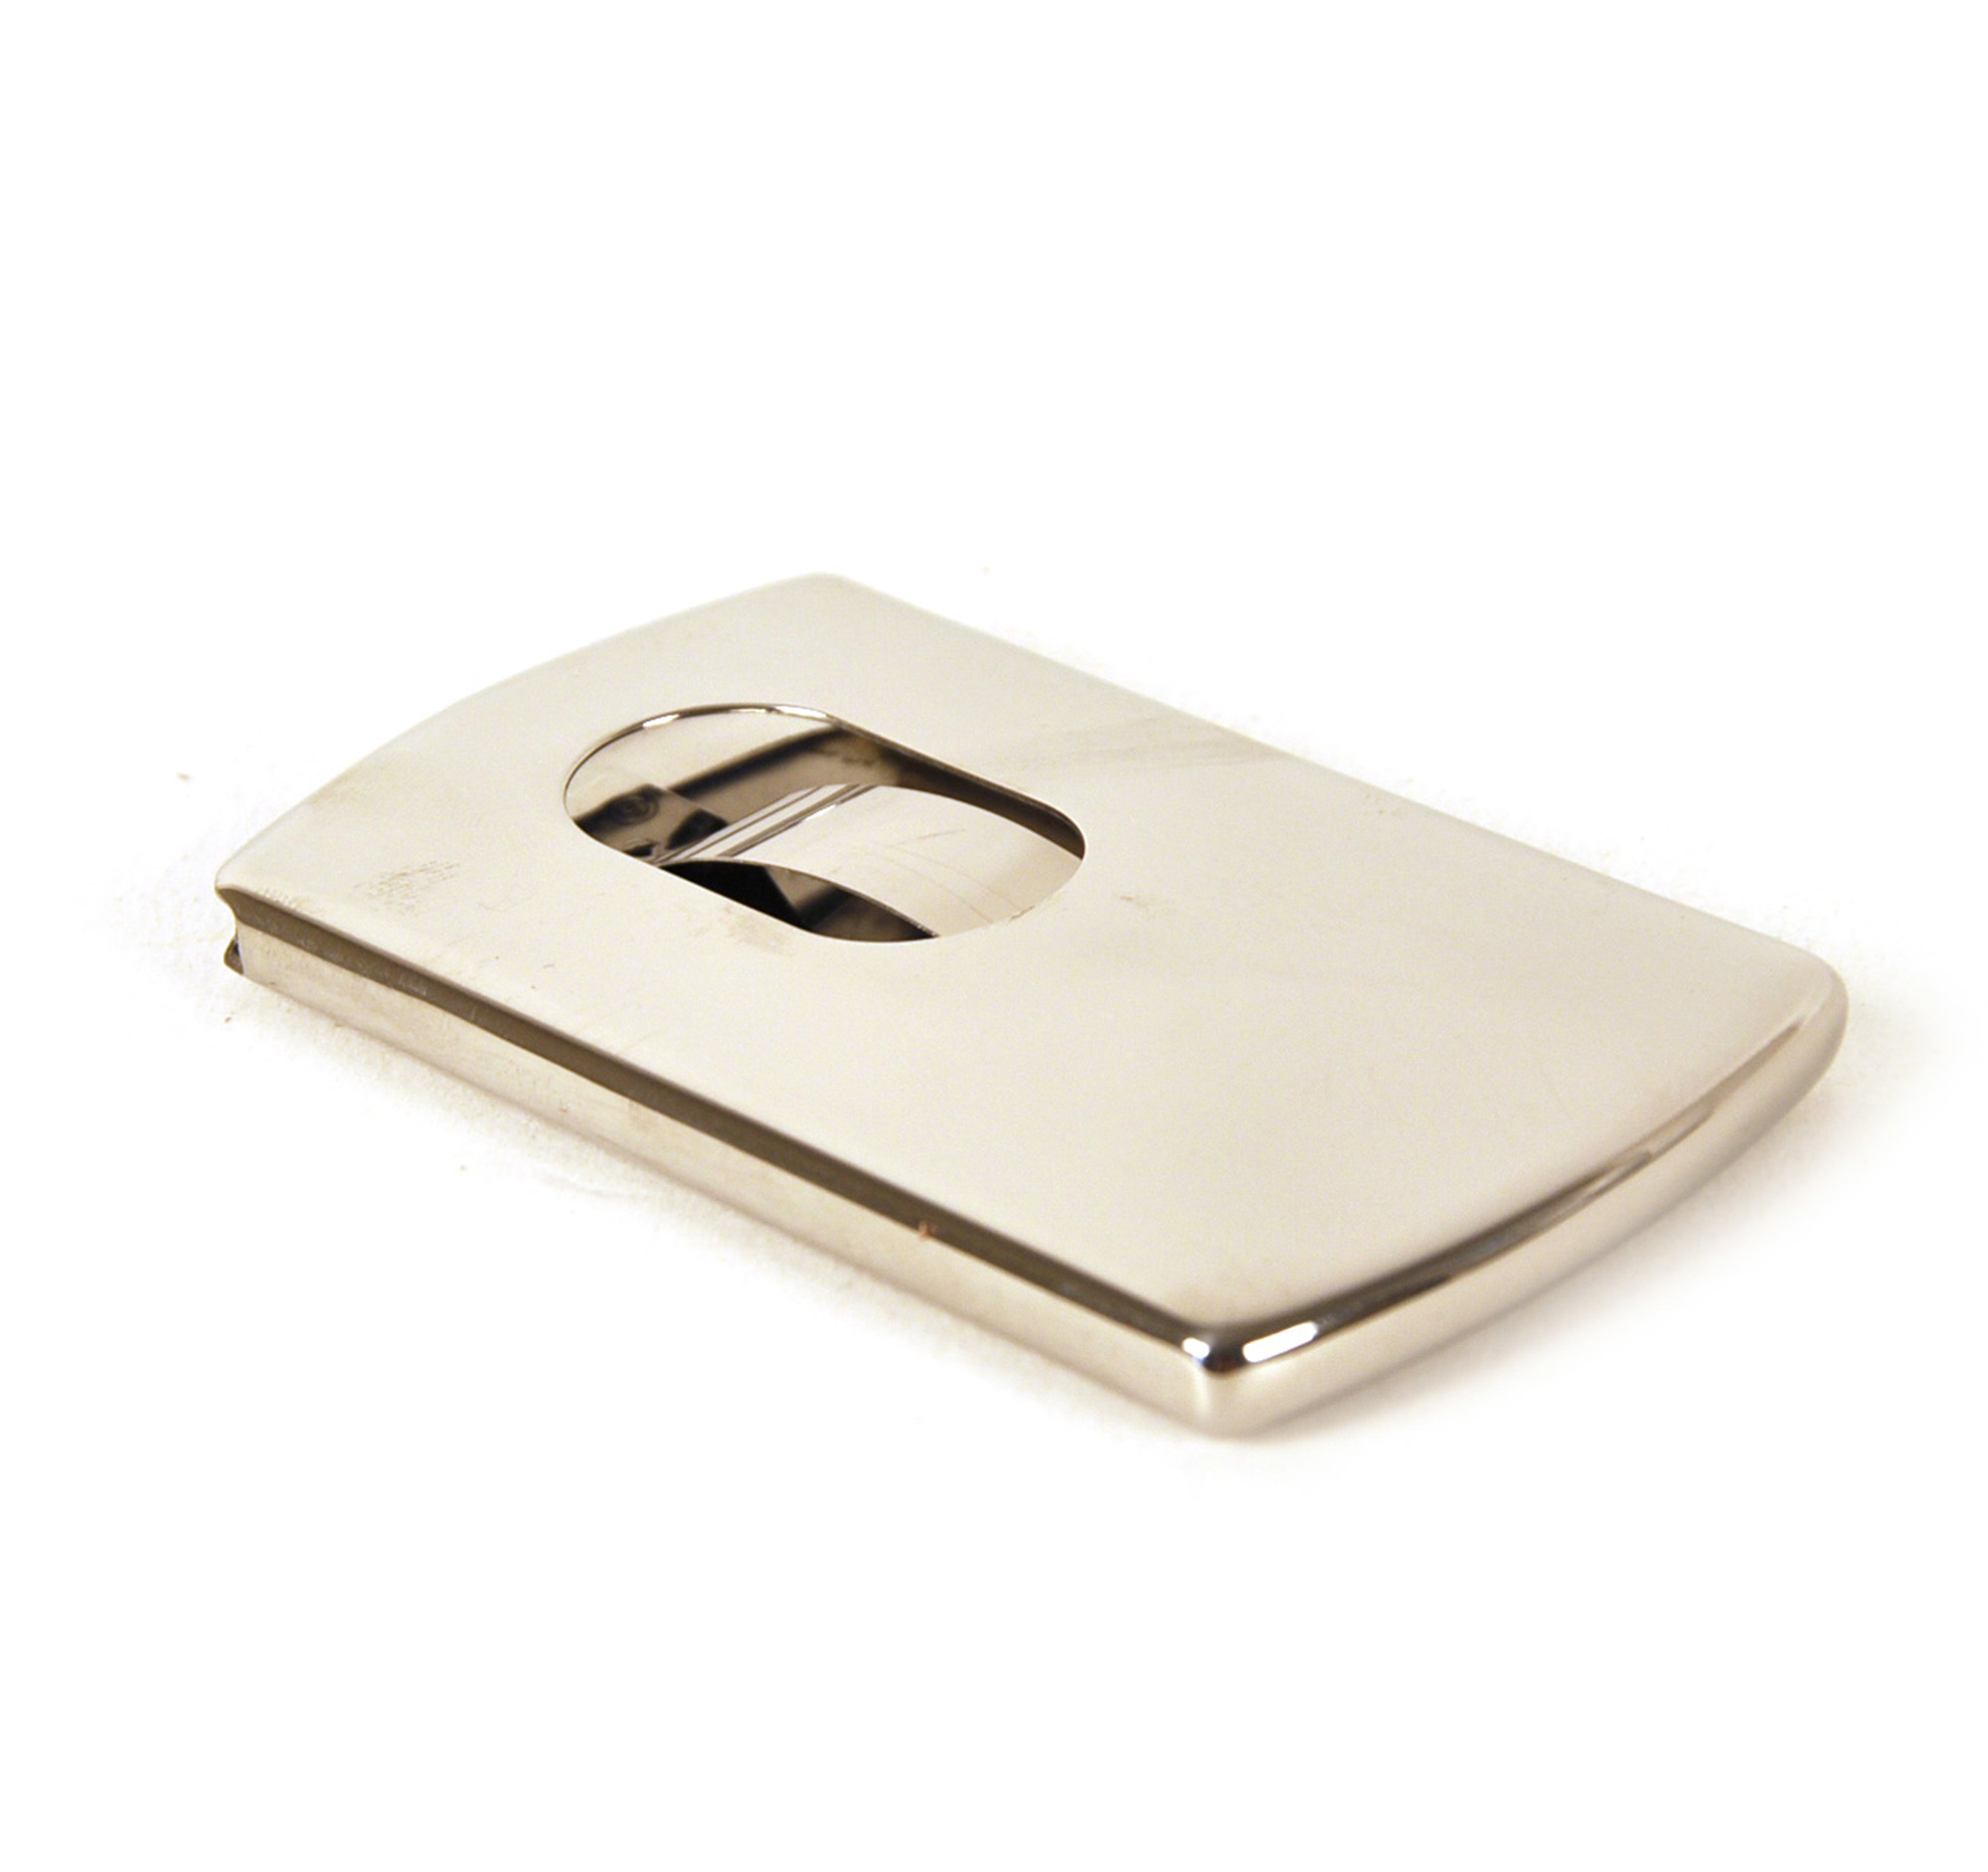 Spring Loaded Stainless Steel Business Card Case | Pink Cat Shop